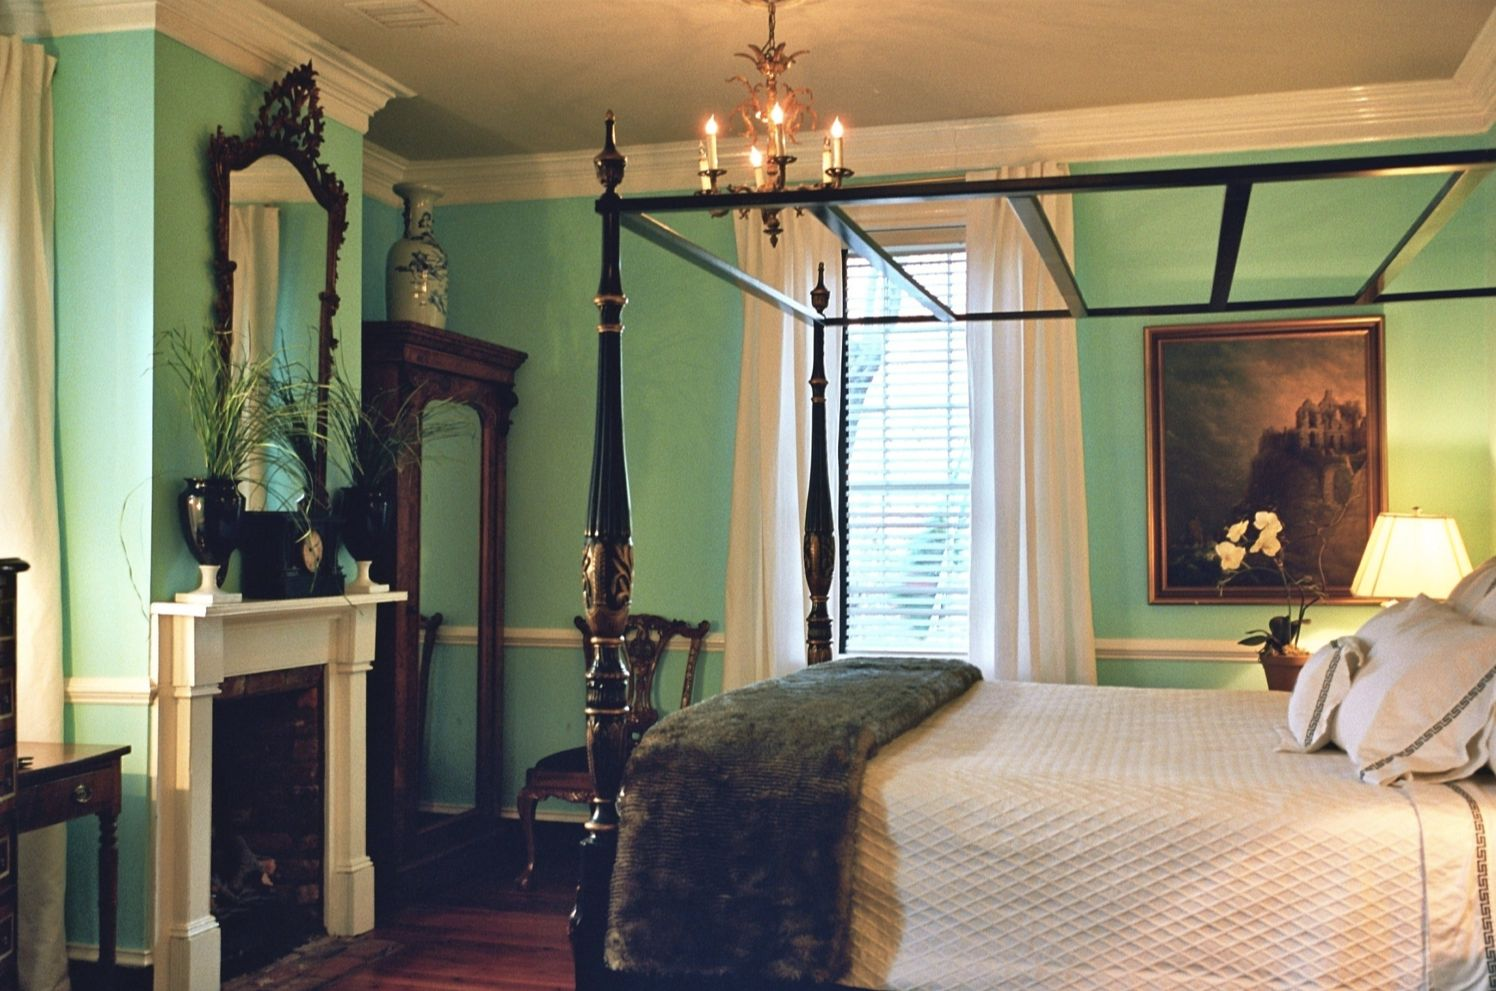 history discover the va breakfast charlottesville bed experiences and excursions virginia htm wine header in area tours